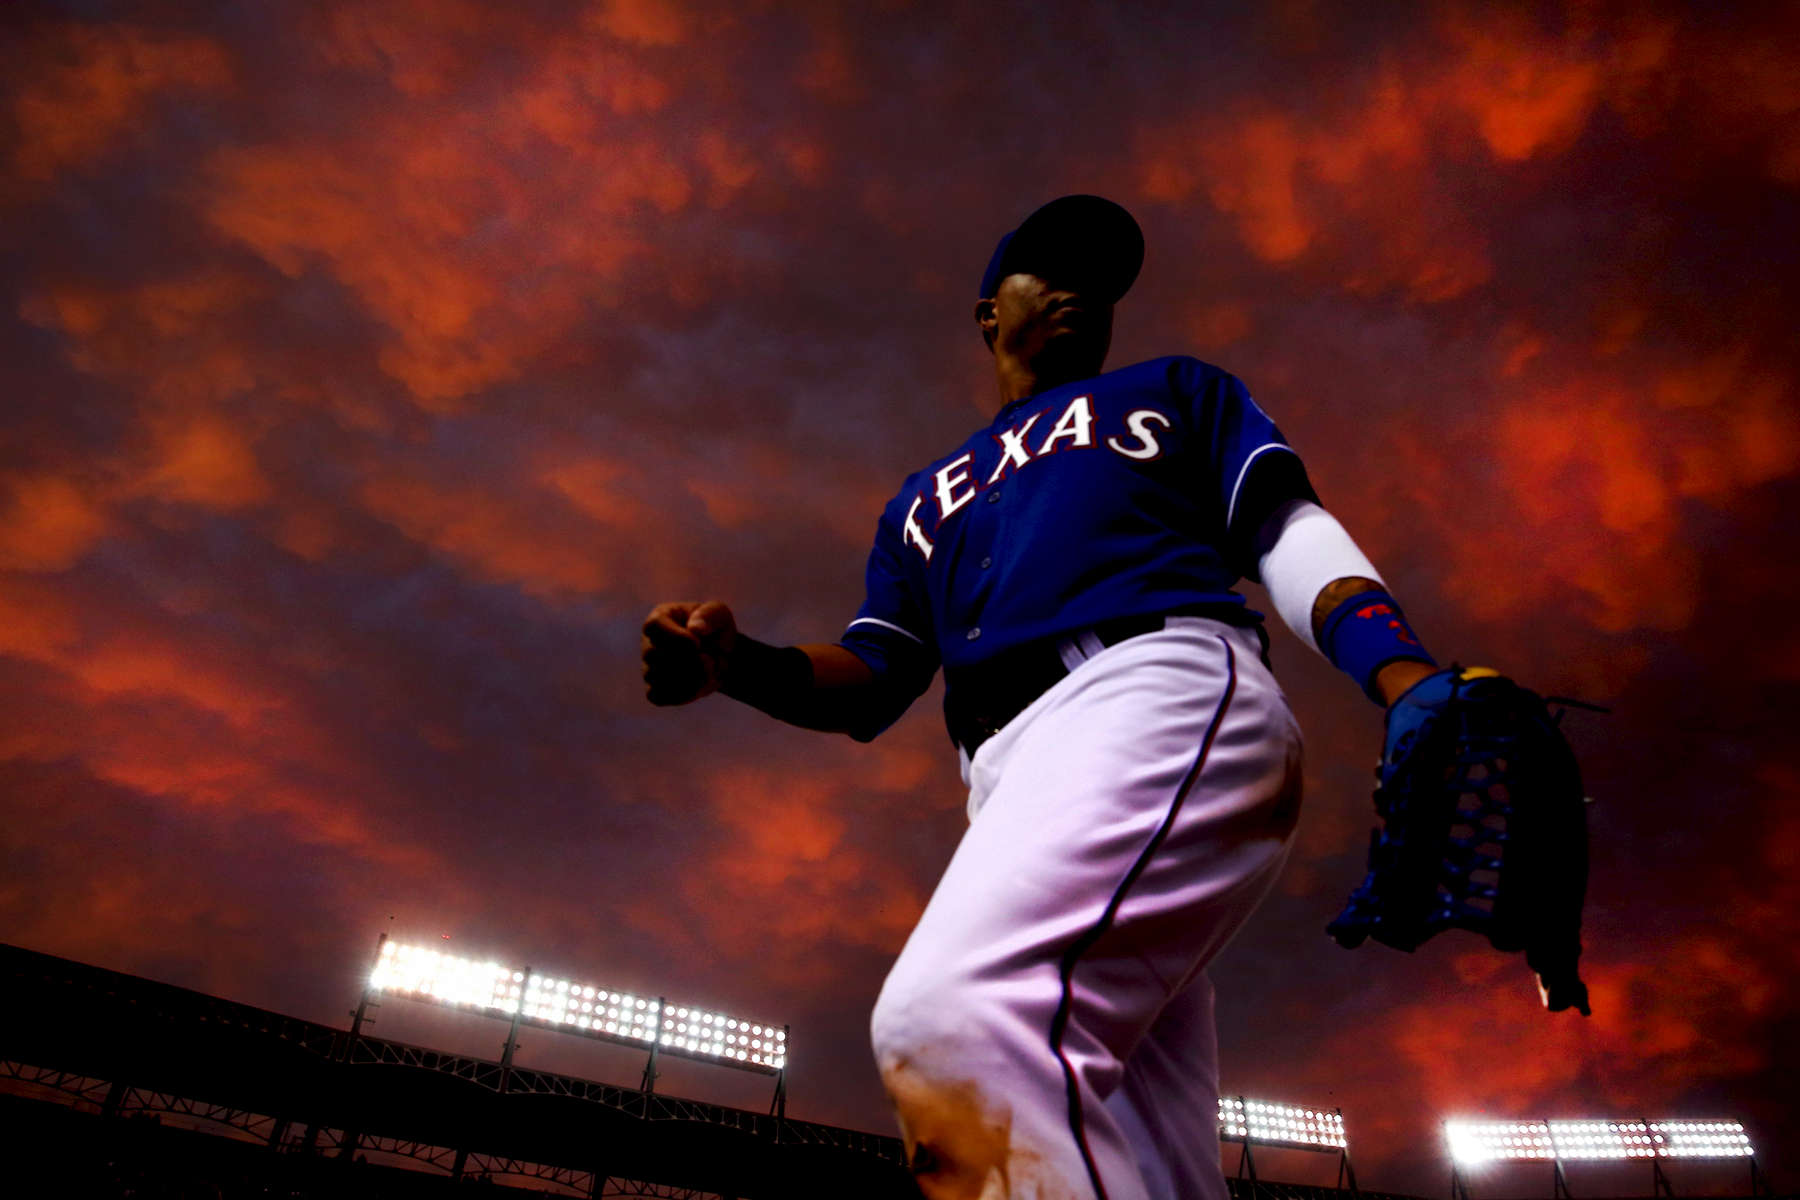 ARLINGTON, TX - MAY 08:  Leonys Martin #2 of the Texas Rangers returns to the dugout in the middle of the fourth inning as the Texas Rangers take on the Colorado Rockies at Globe Life Park in Arlington on May 8, 2014 in Arlington, Texas.  (Photo by Tom Pennington/Getty Images)